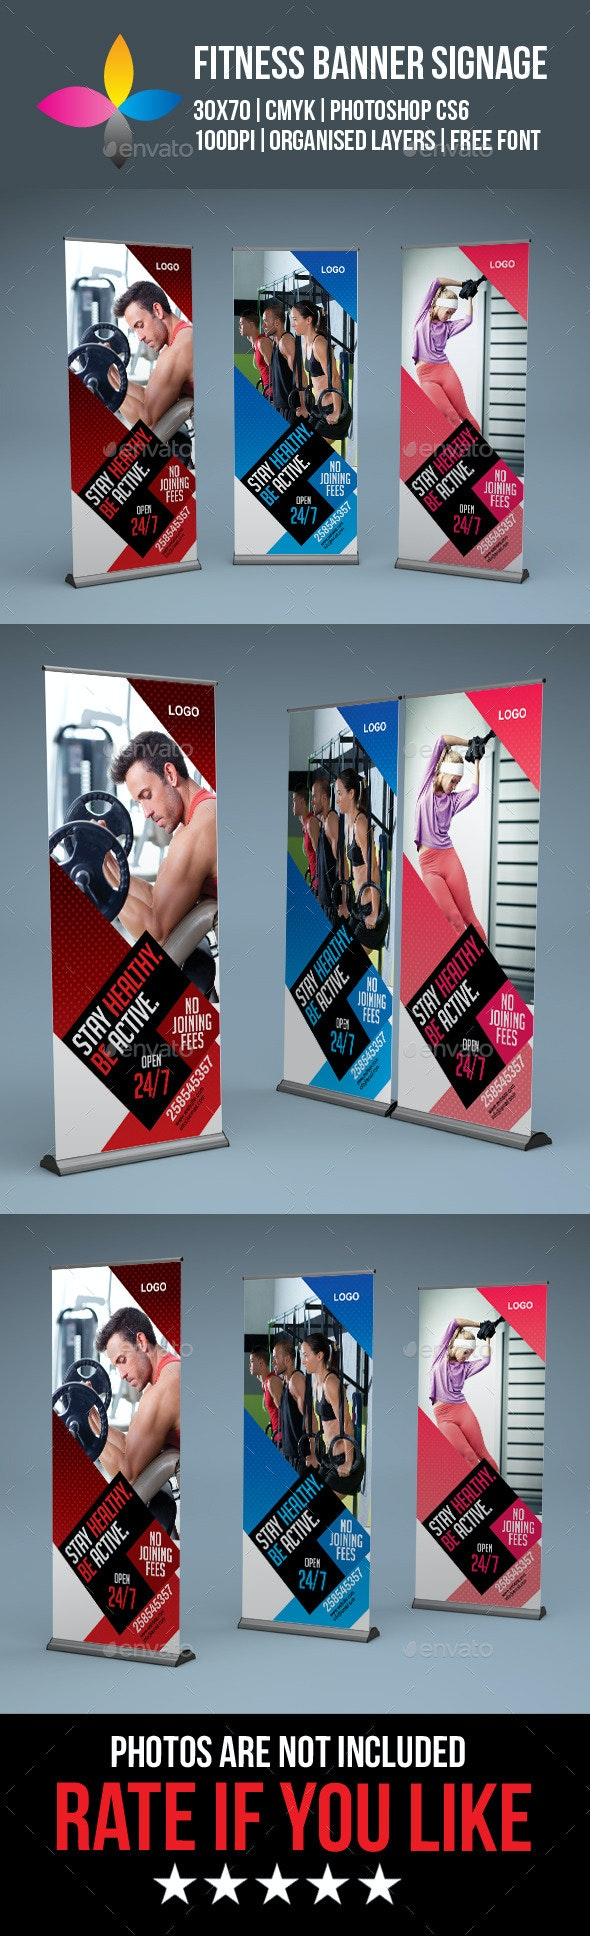 Fitness Roll Up Banner Signage - Signage Print Templates